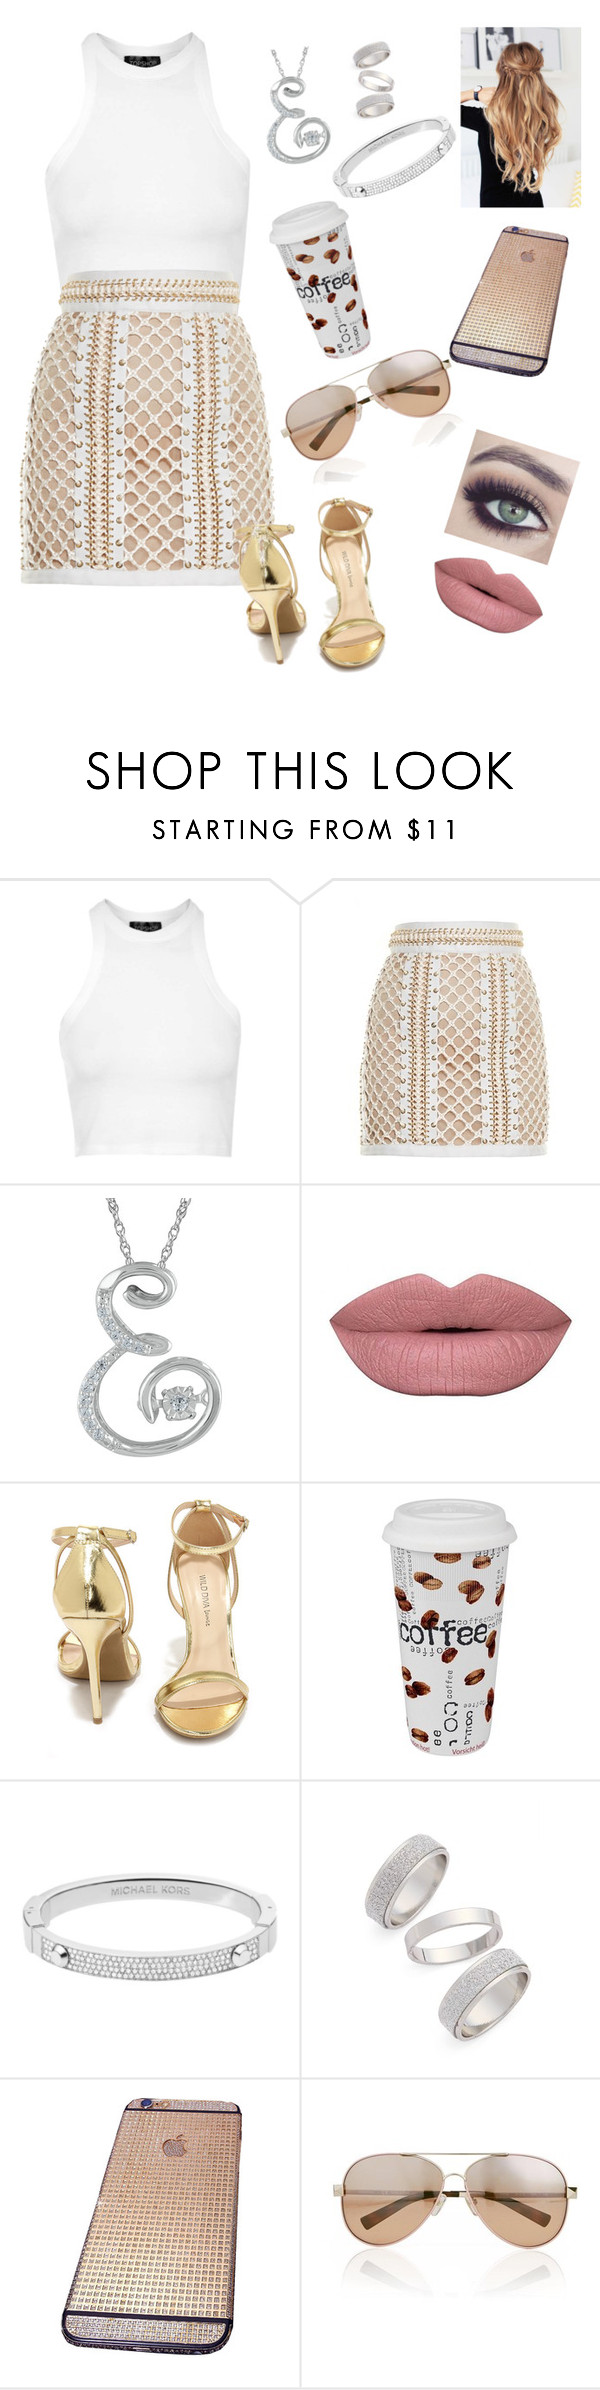 """""""Untitled #230"""" by hellosweeties2 ❤ liked on Polyvore featuring Topshop, Balmain, Tuttle, Wild Diva, Könitz, Michael Kors, Valentino, women's clothing, women and female"""